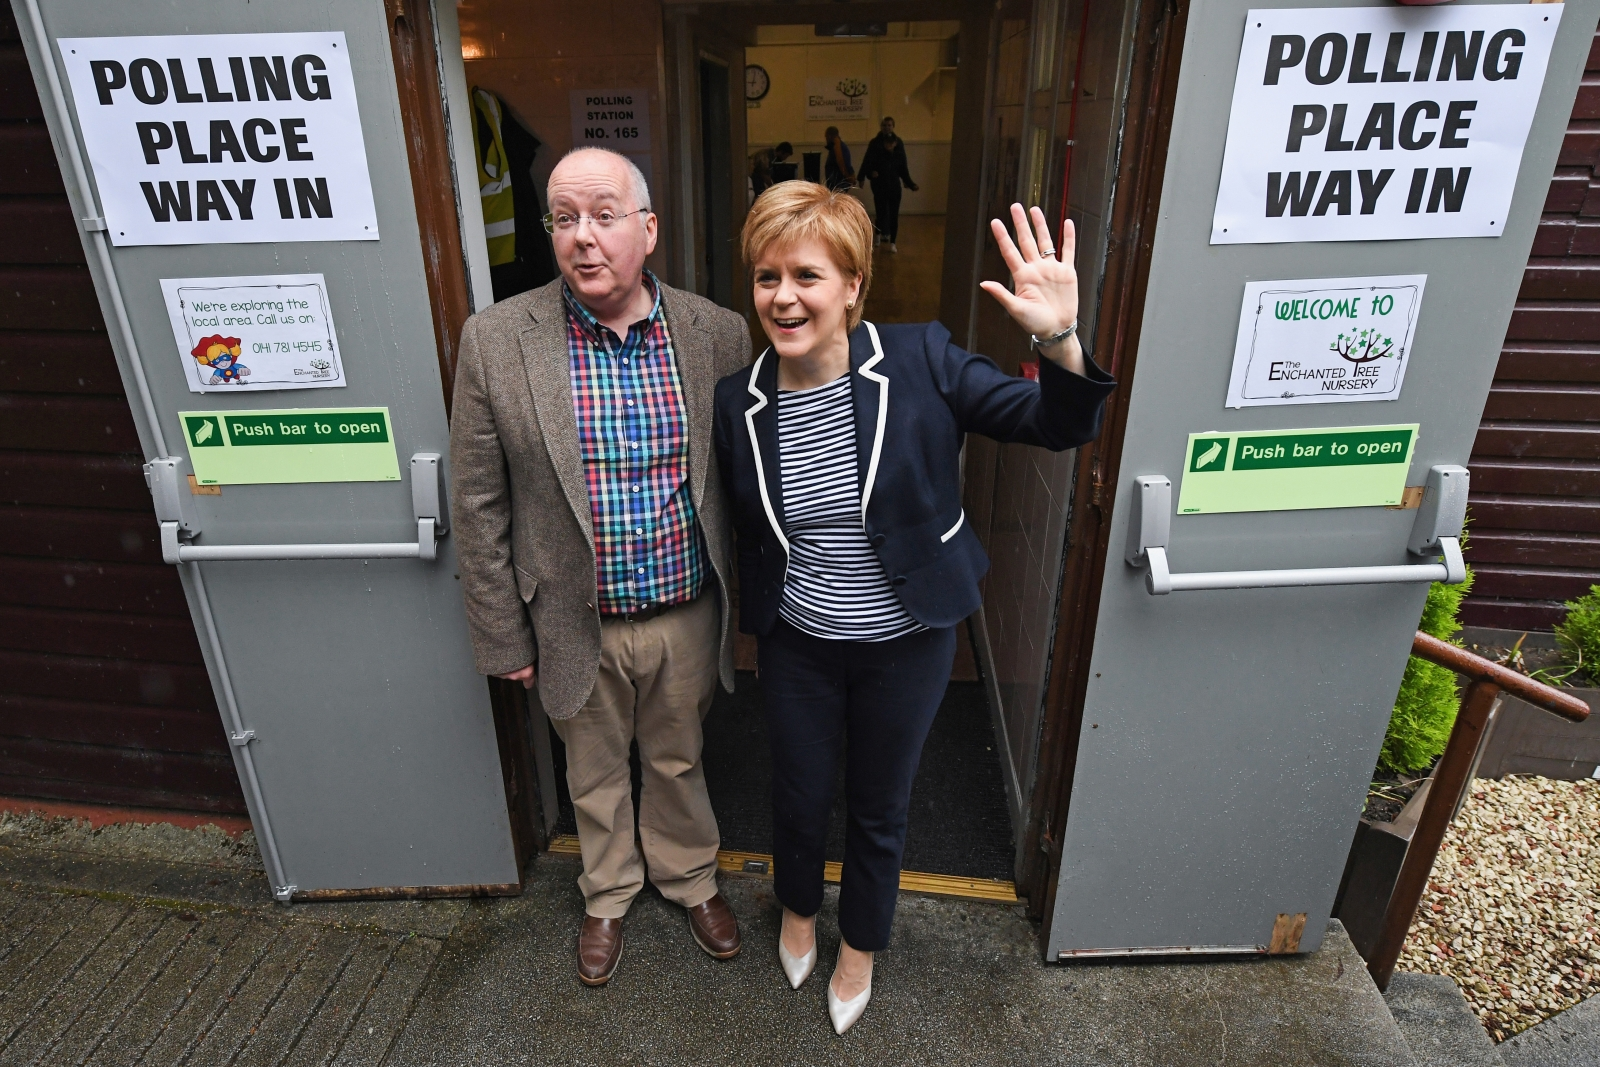 1.8m Scottish votes 'wasted' at general election